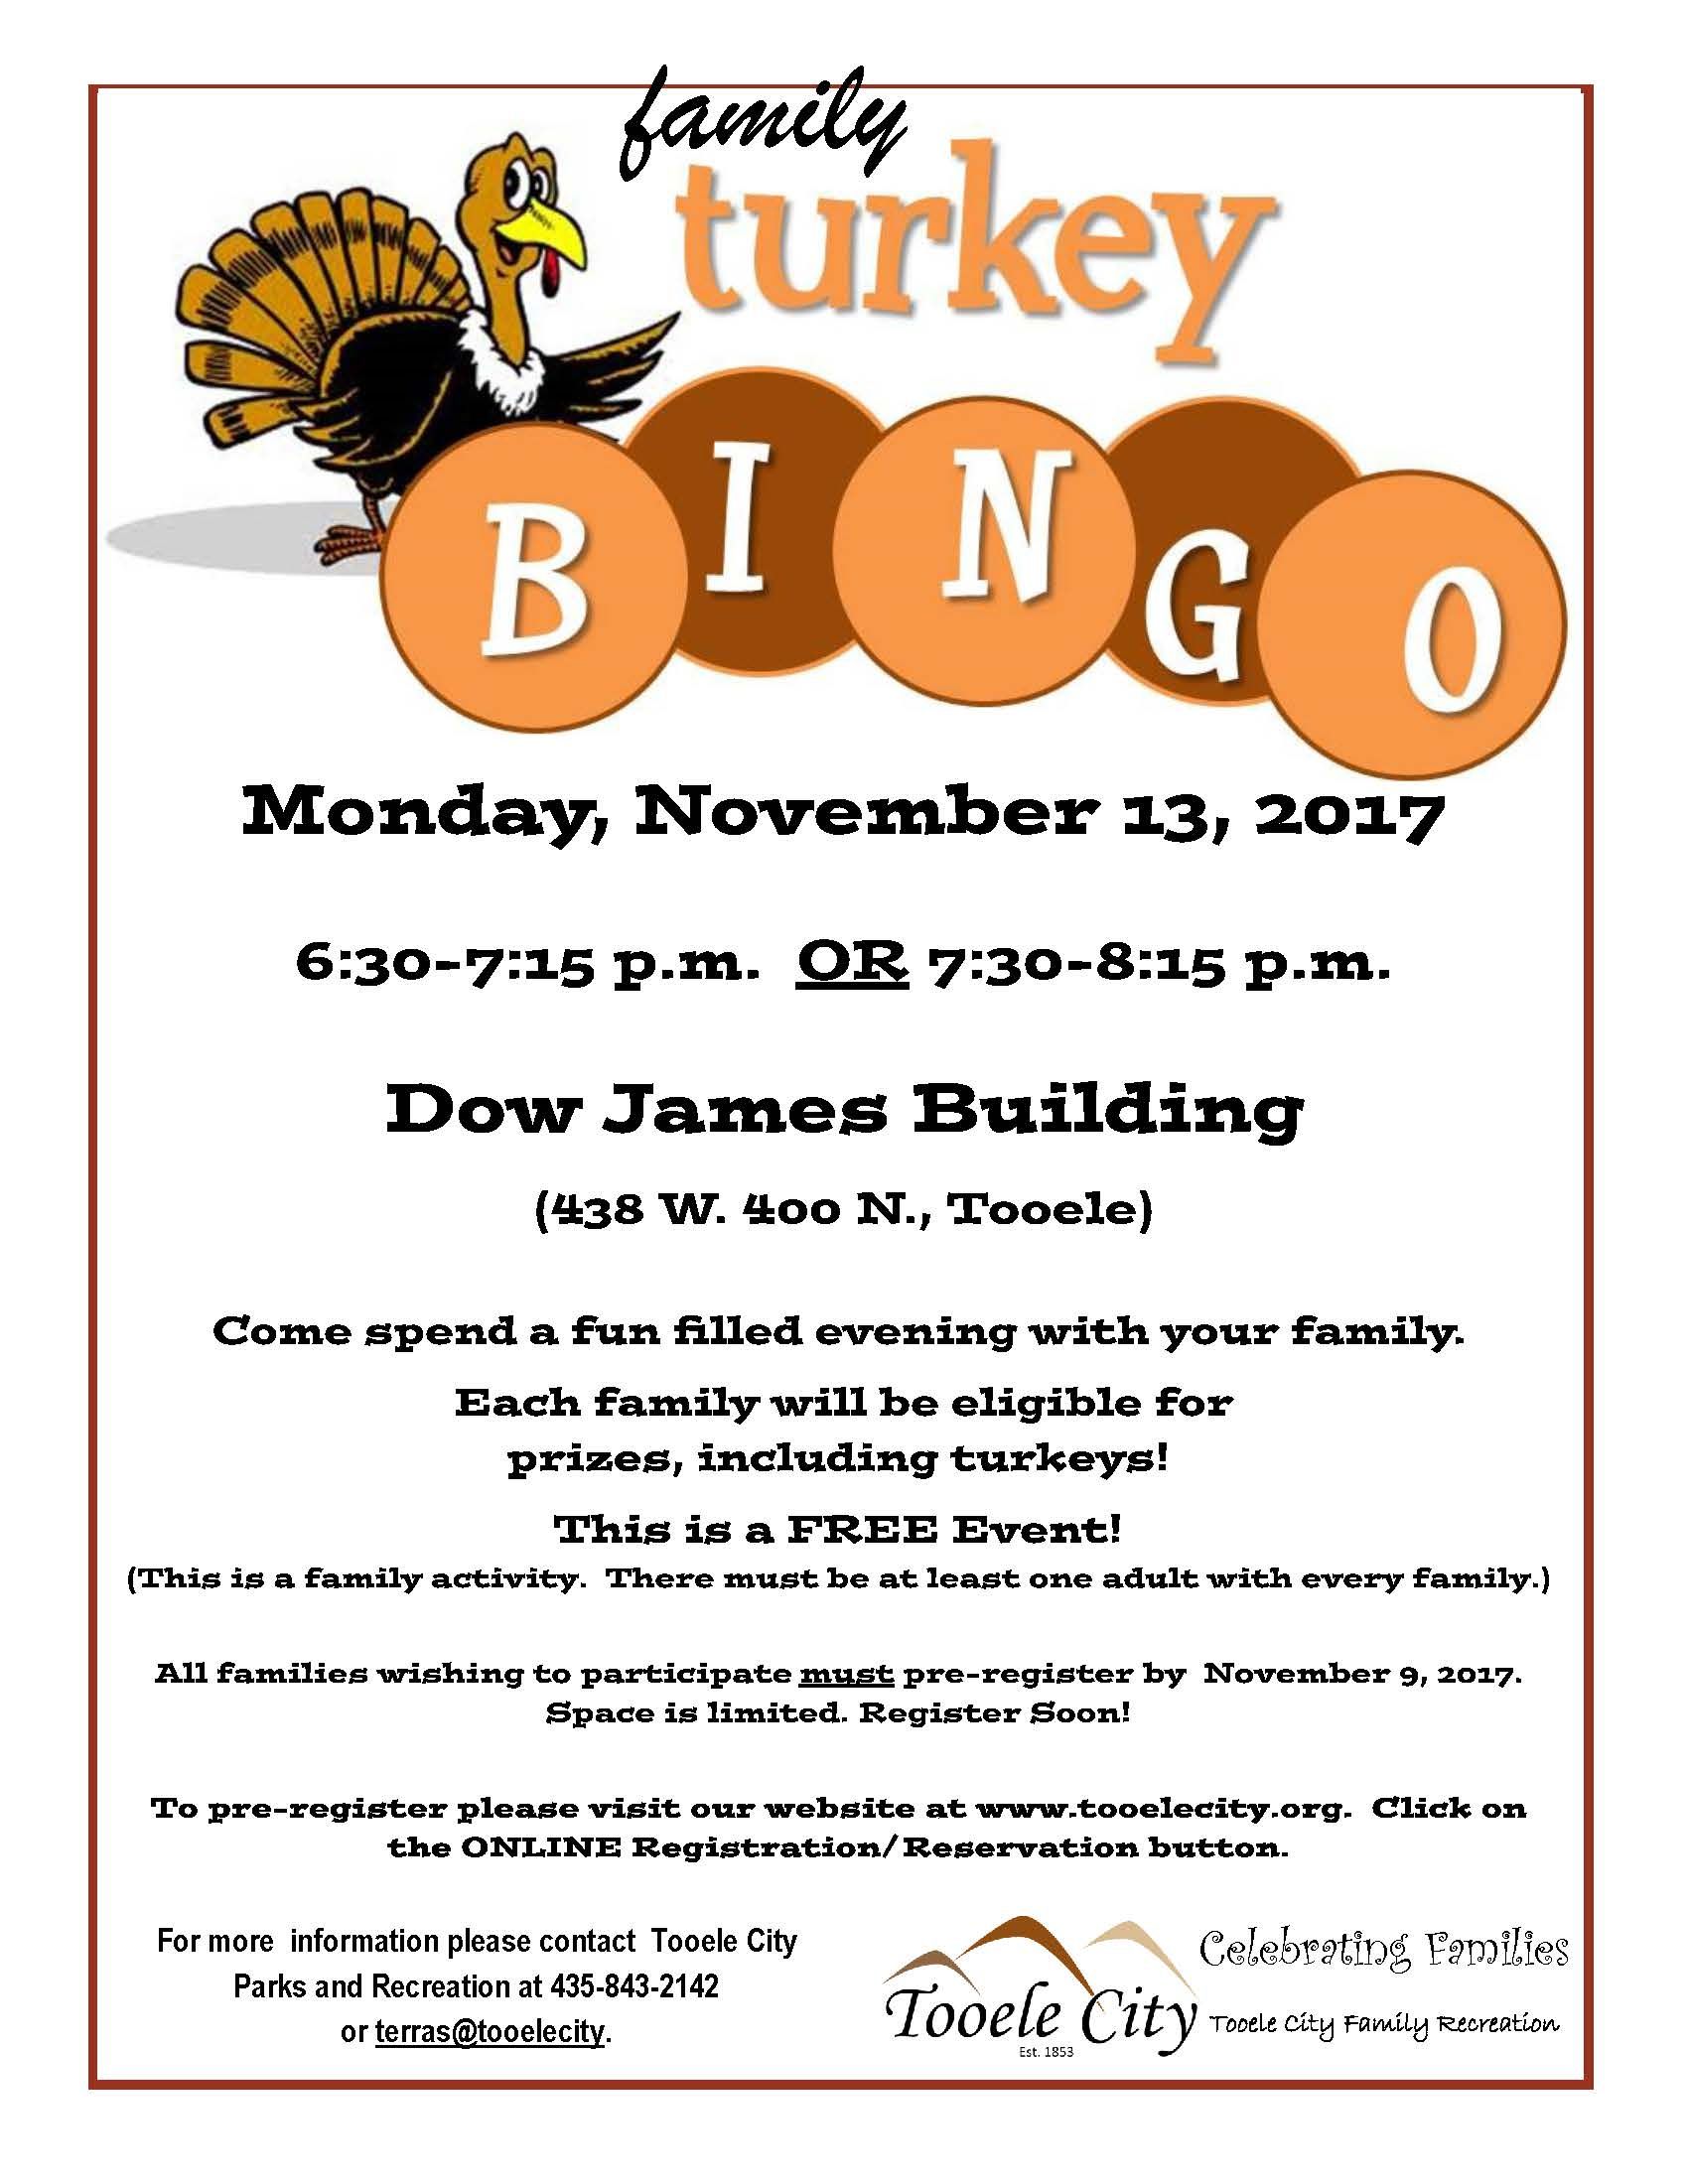 Turkey Bingo Family Activity November 2017